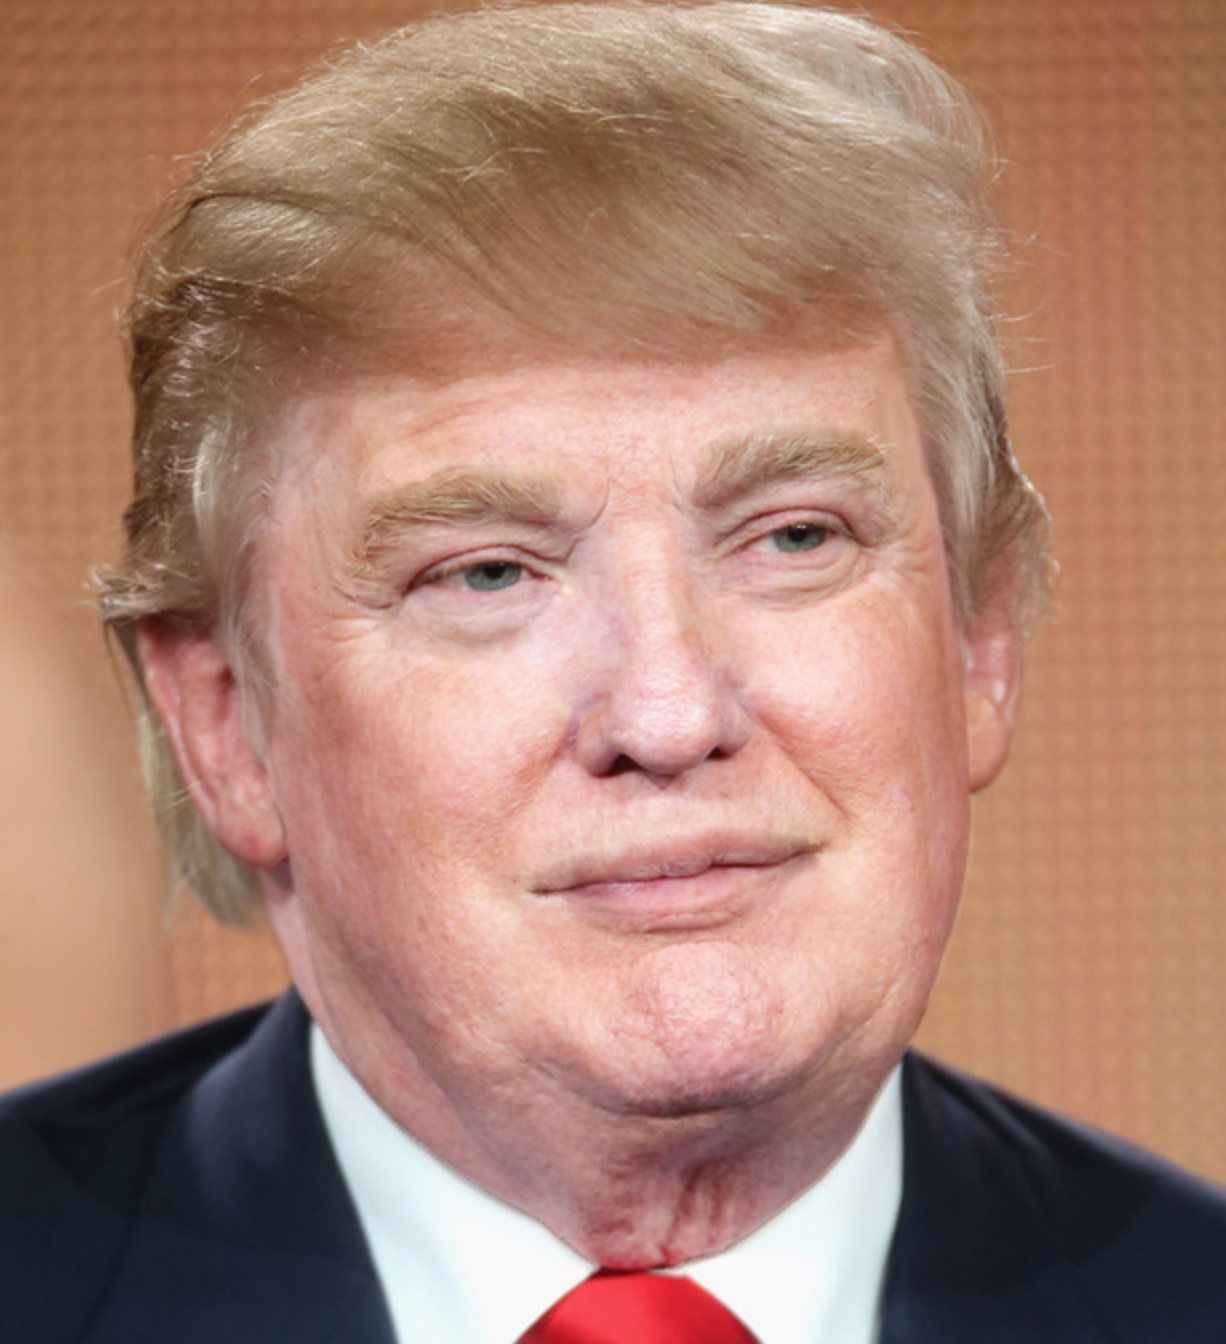 PIC: This image of Donald Trump without his fake tan is disturbing the ...